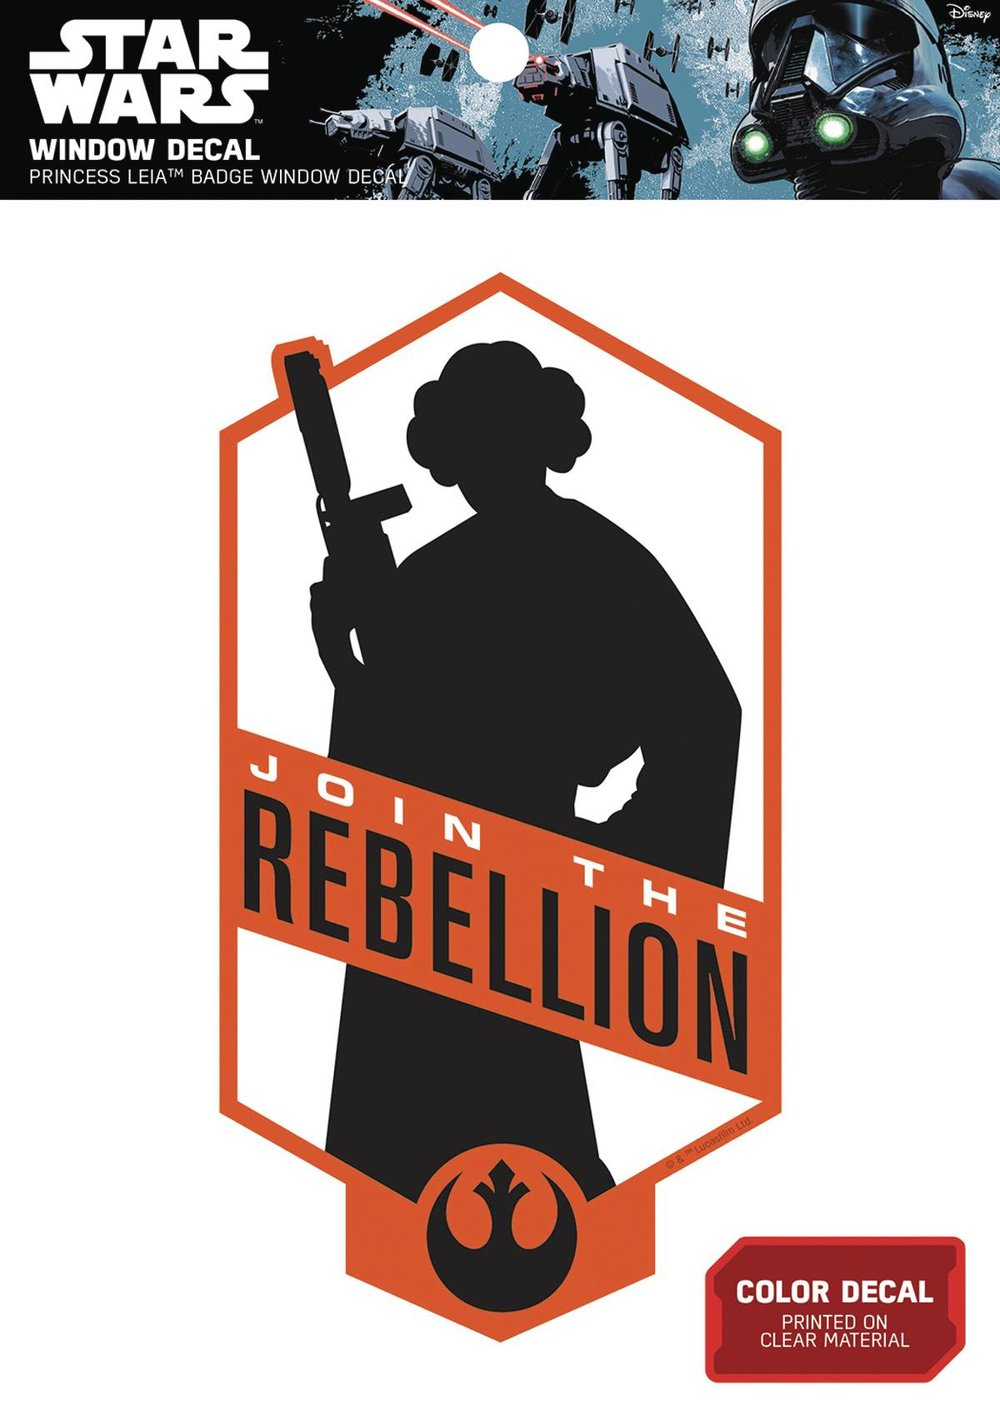 STAR WARS PRINCESS LEIA JOIN THE REBELLION WINDOW DECAL.jpg